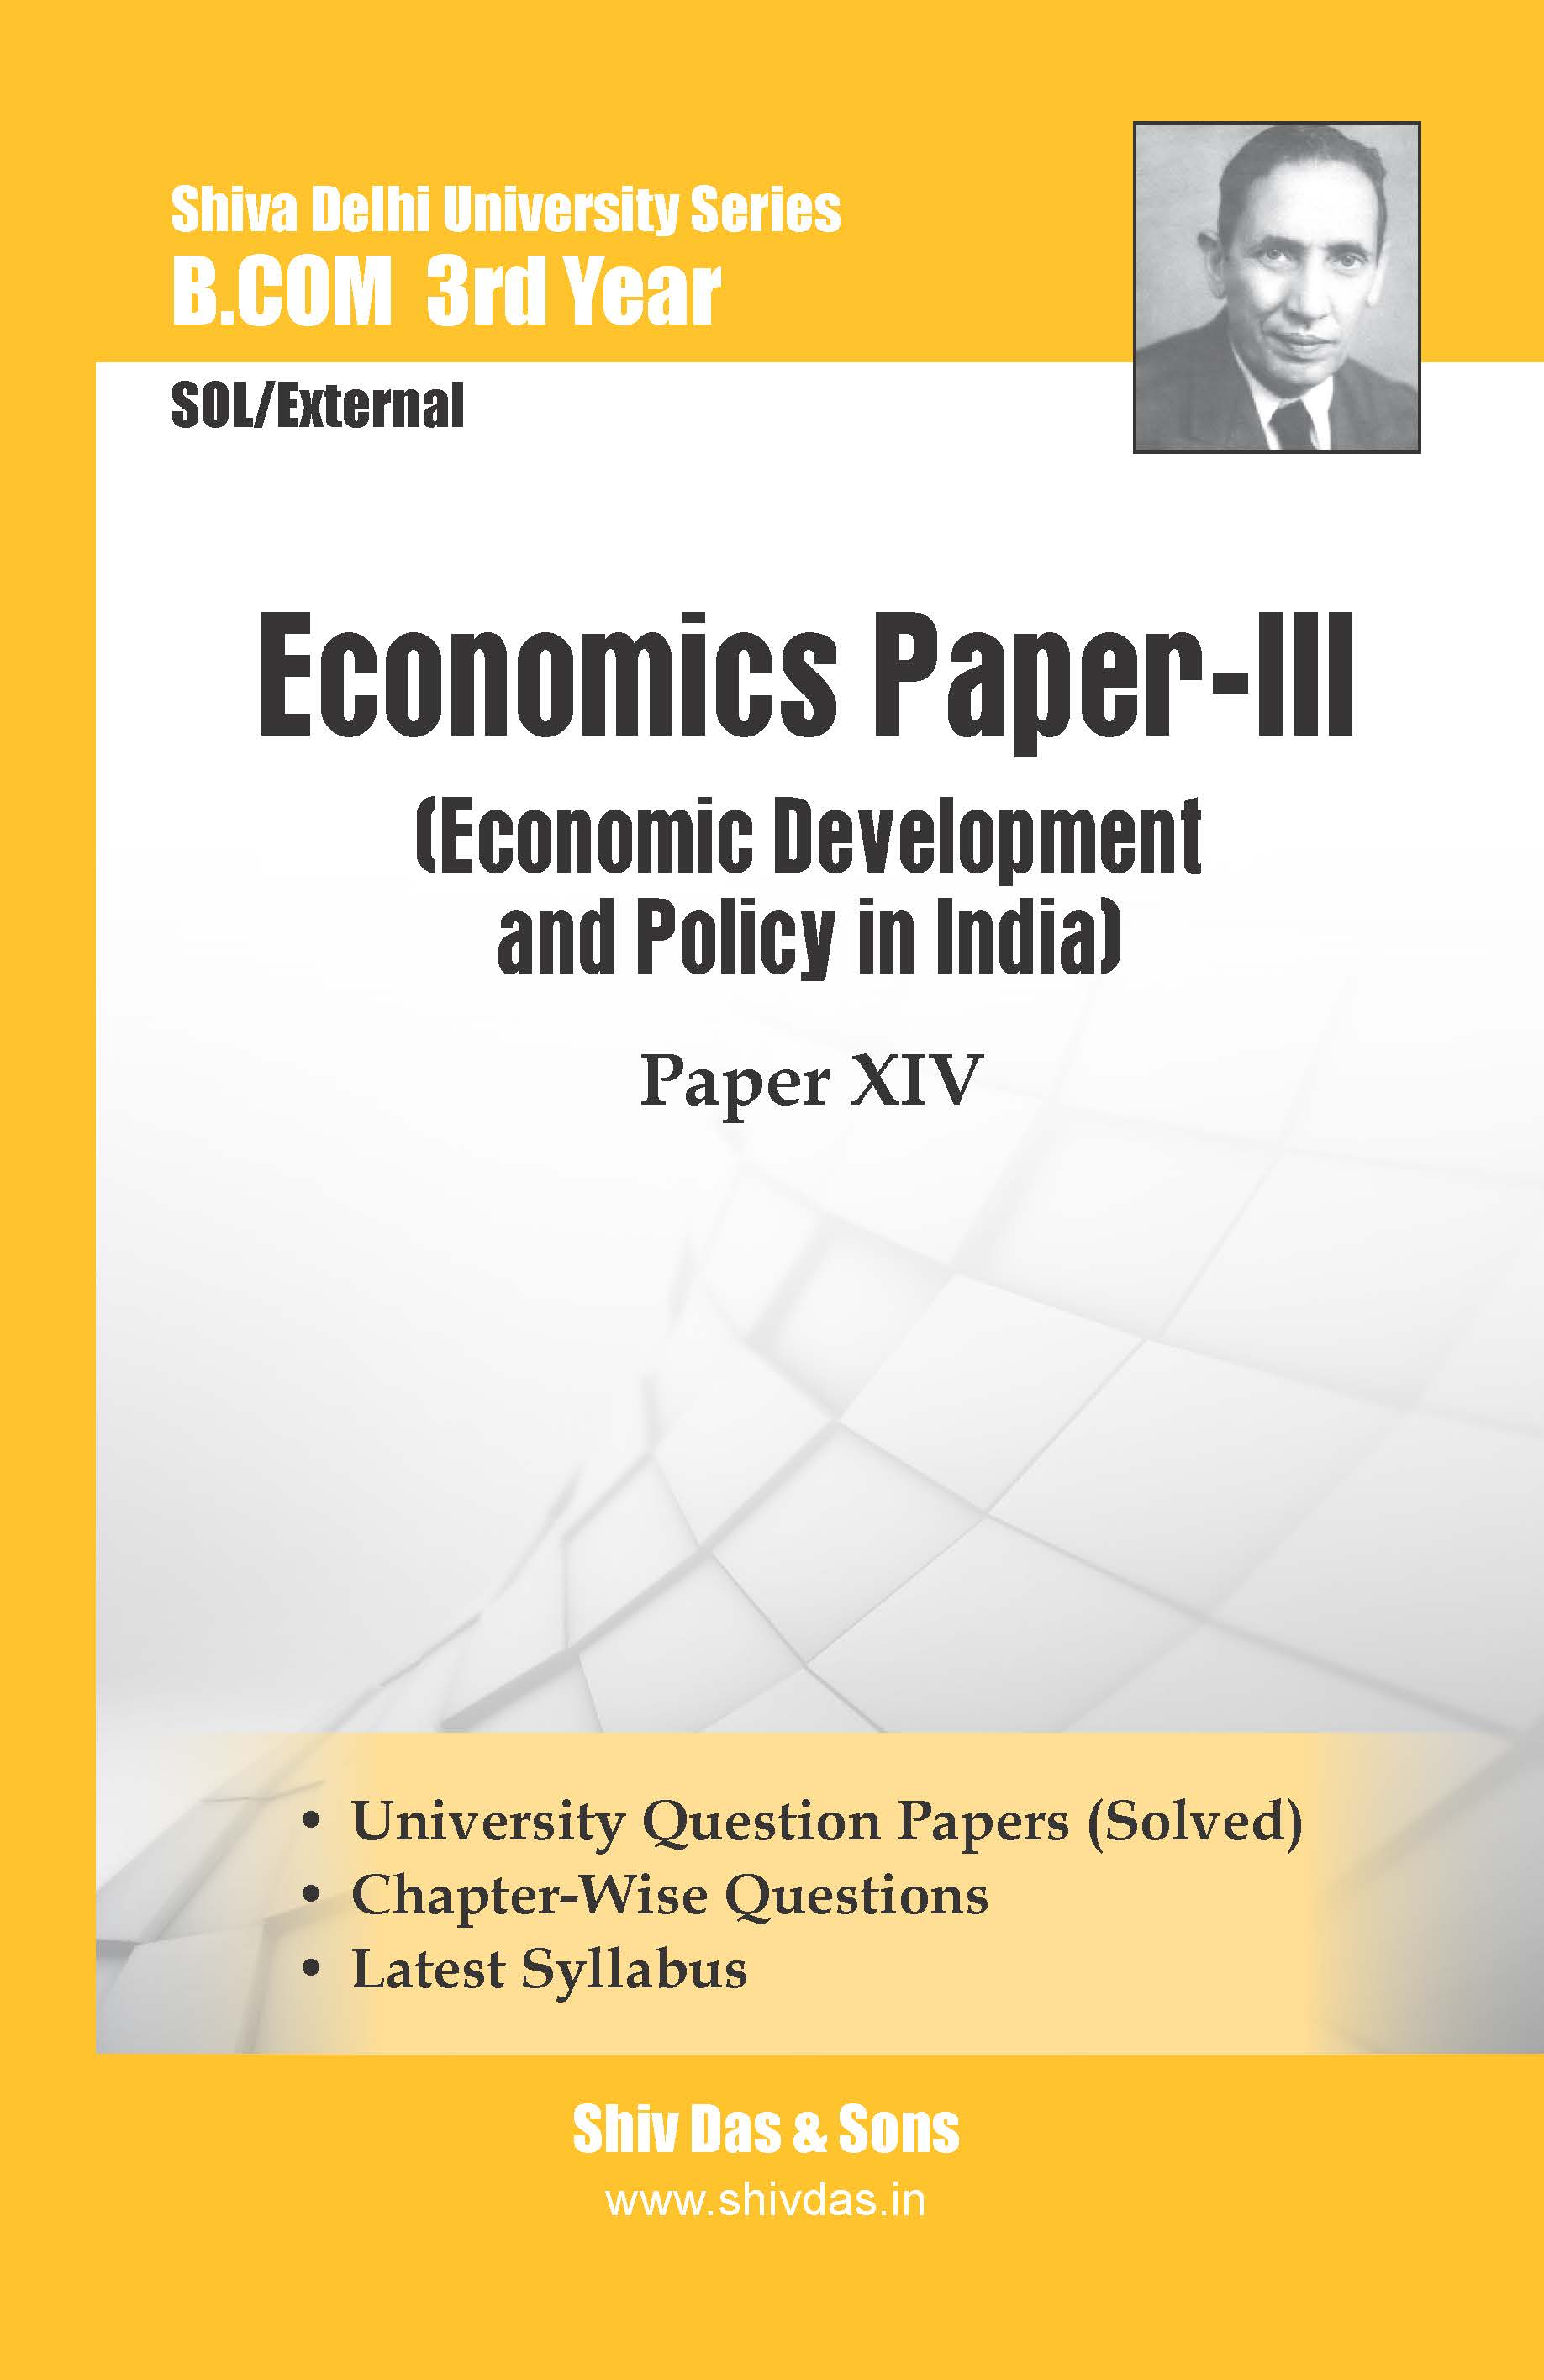 B.Com 3rd Year SOL/External Economics Paper-III (Hindi Medium)-Shiv Das Delhi University Series